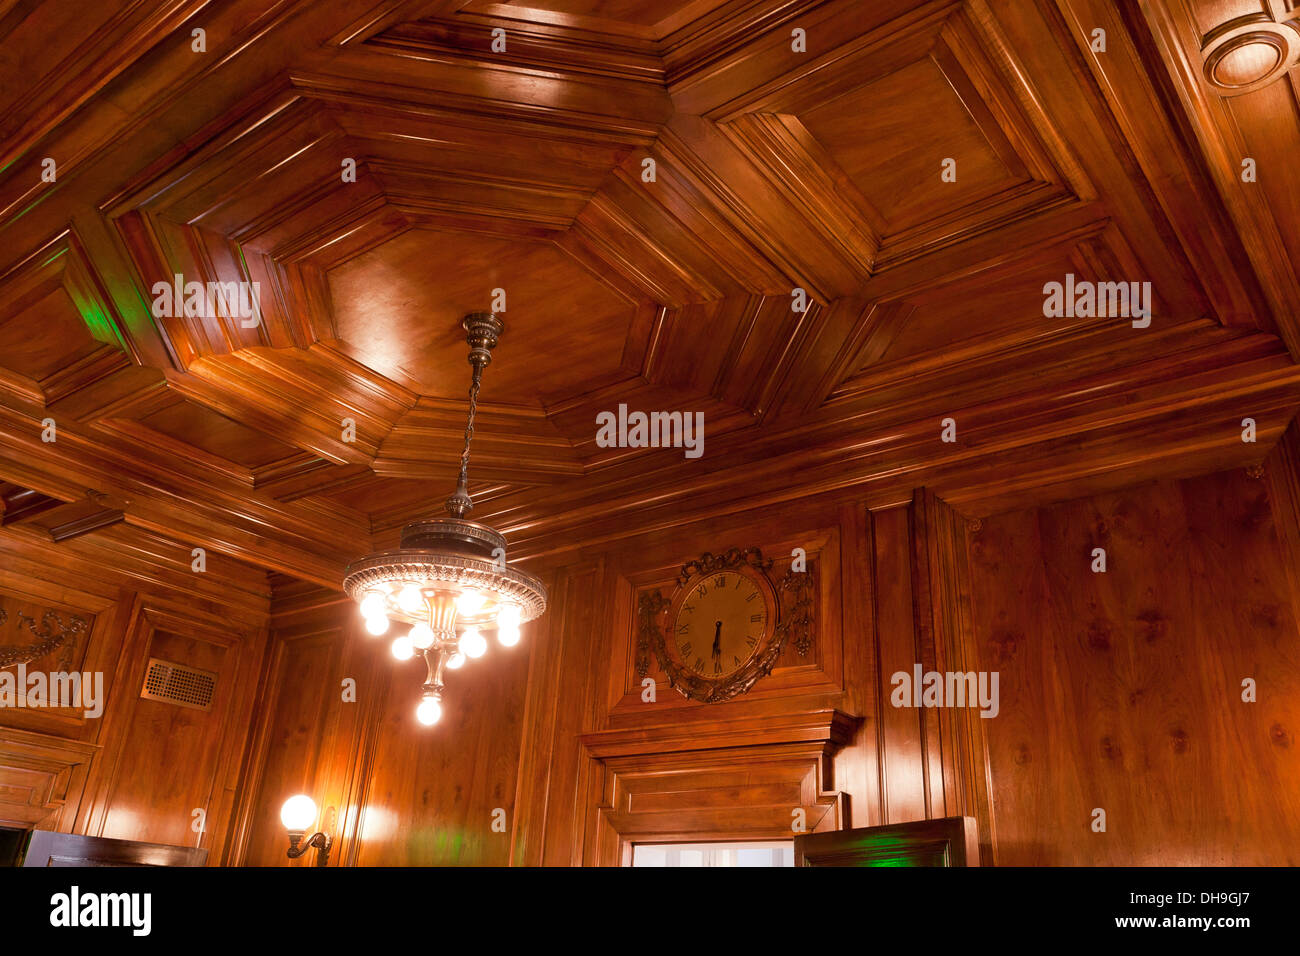 Stock Photo - Wood panel ceiling - Wood Panel Ceiling Stock Photo, Royalty Free Image: 62290879 - Alamy